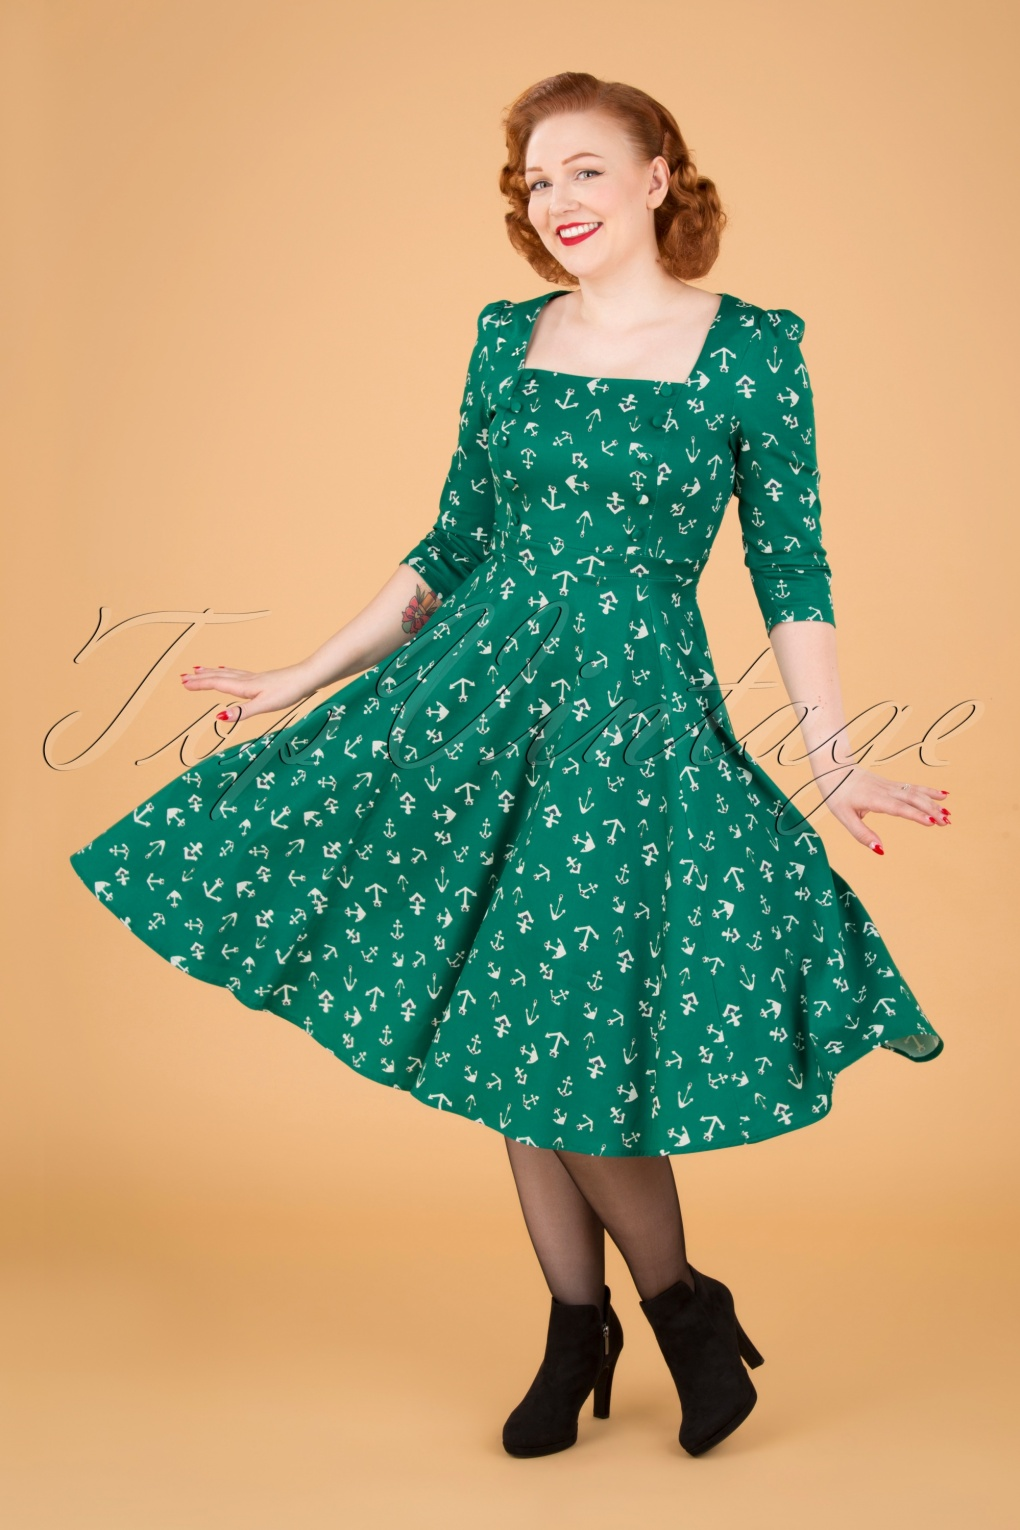 Vintage Cruise Outfits, Vacation Clothing 50s Madeline Anchor Swing Dress in Green £53.29 AT vintagedancer.com